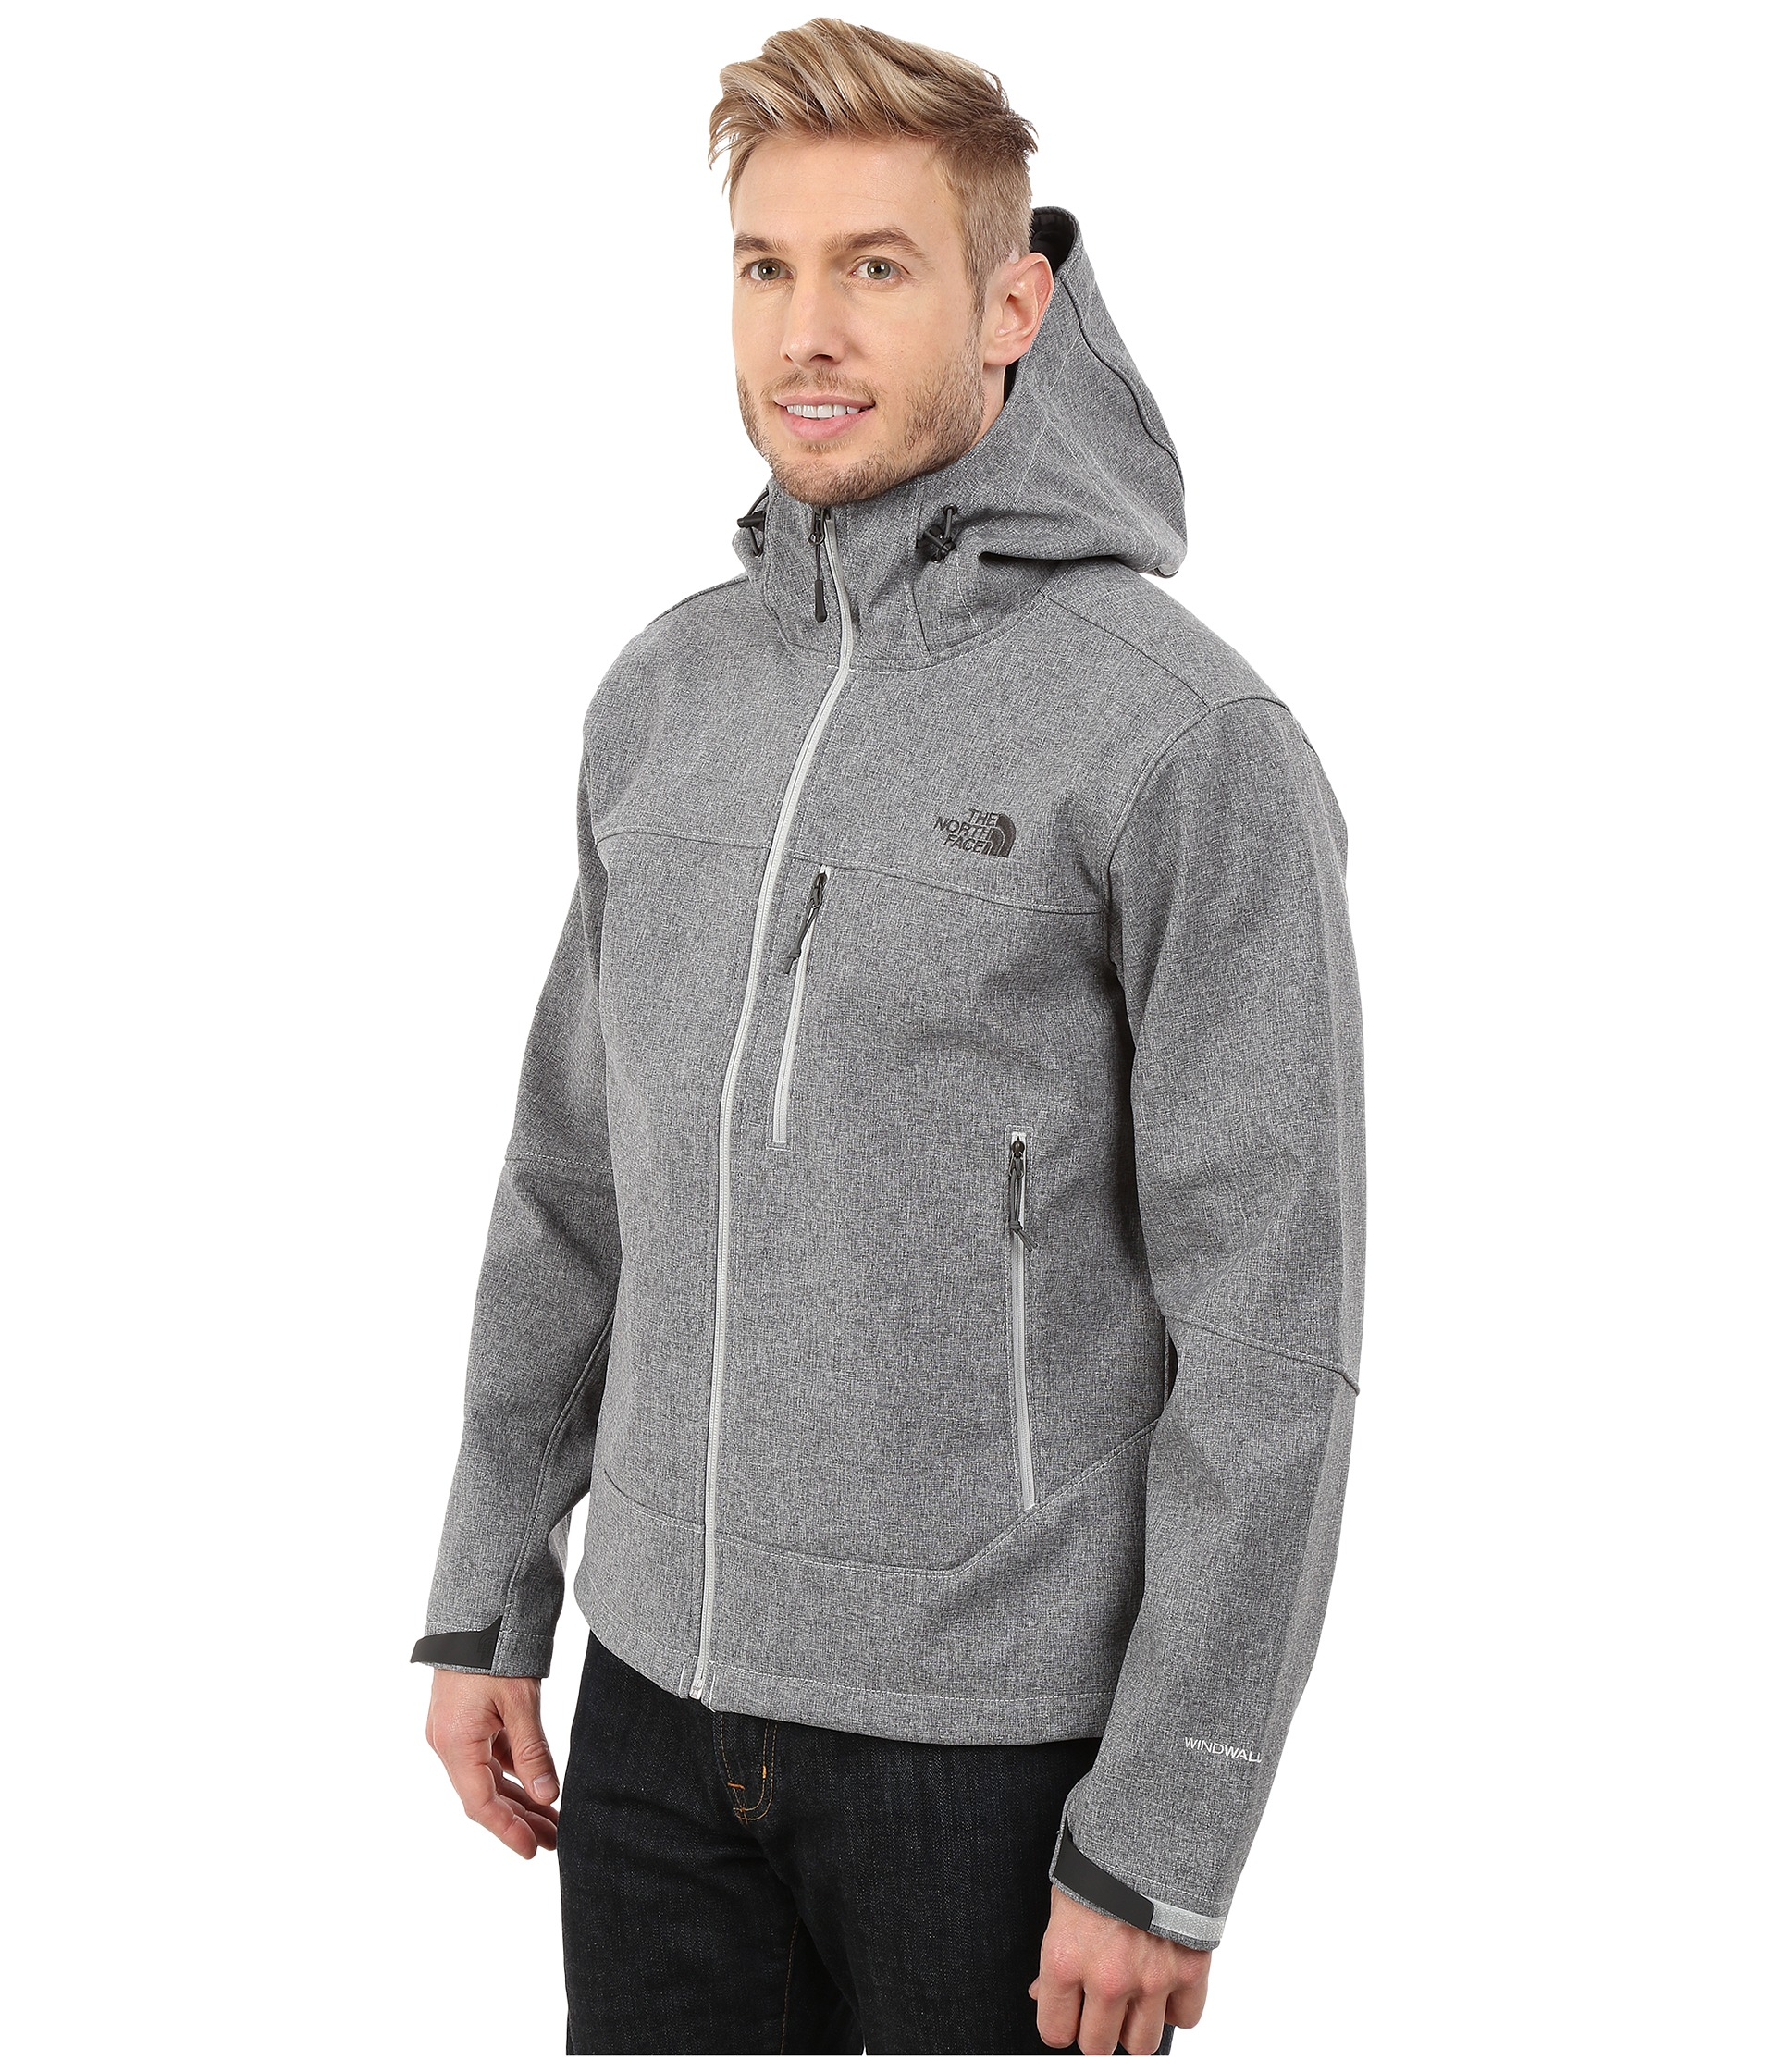 4c8ccbedb The North Face Gray Apex Bionic Hoodie for men